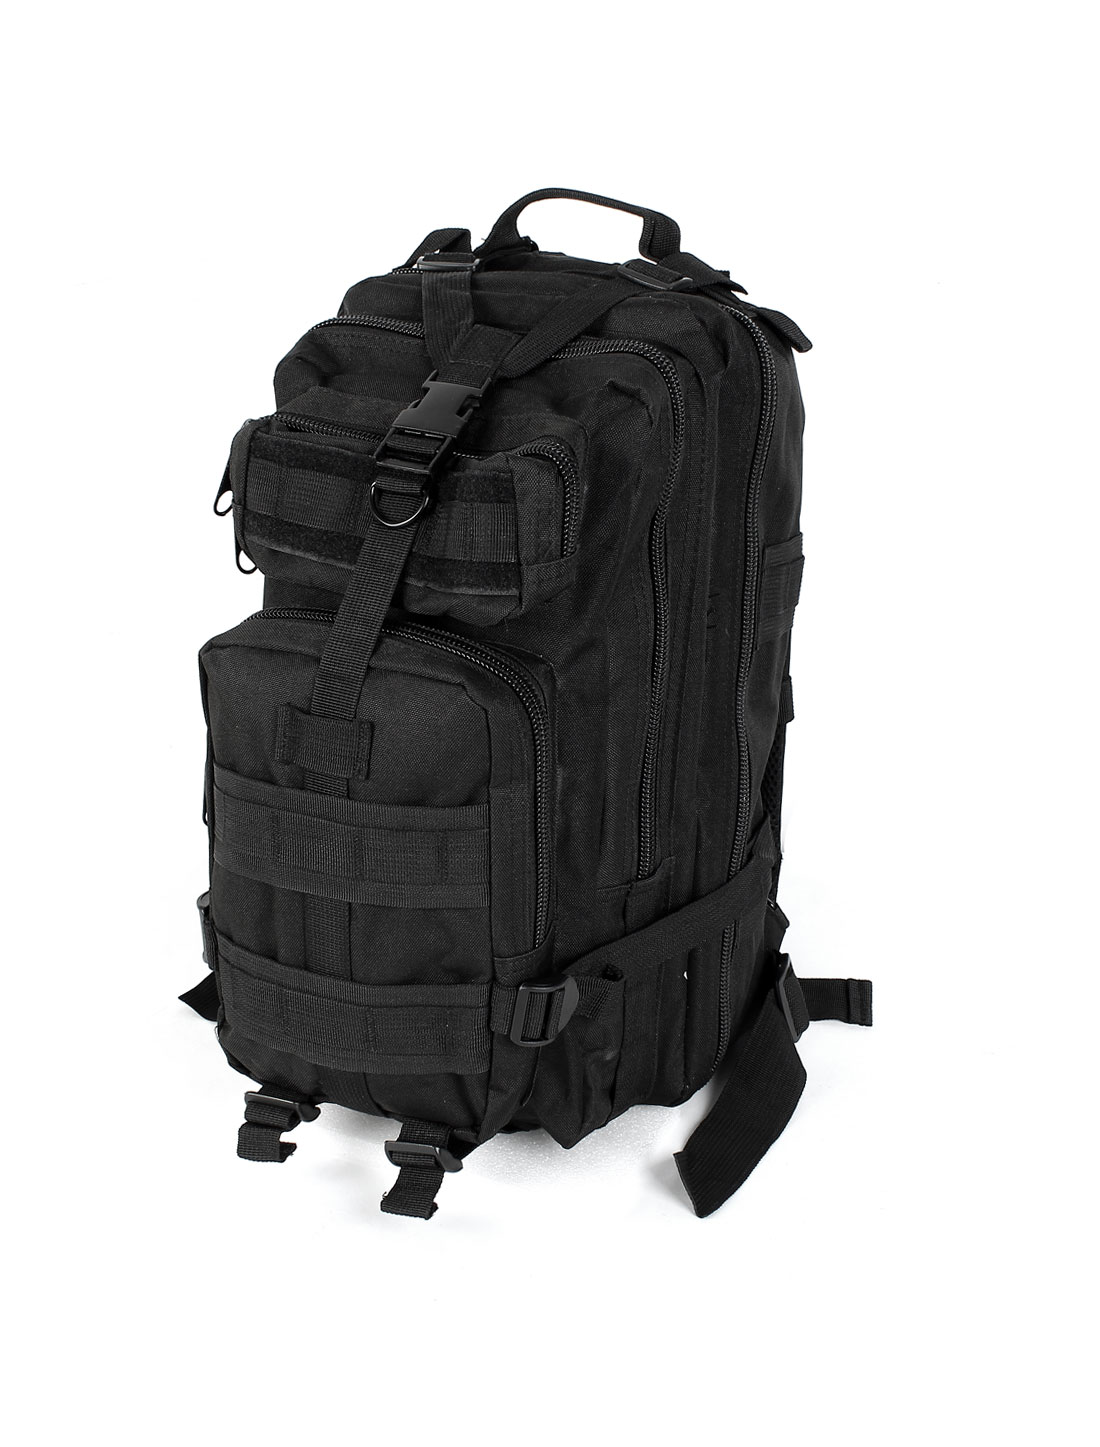 Military Tactical Rucksack Oxford Cloth Bag Outdoor Hiking Travel Backpack Black